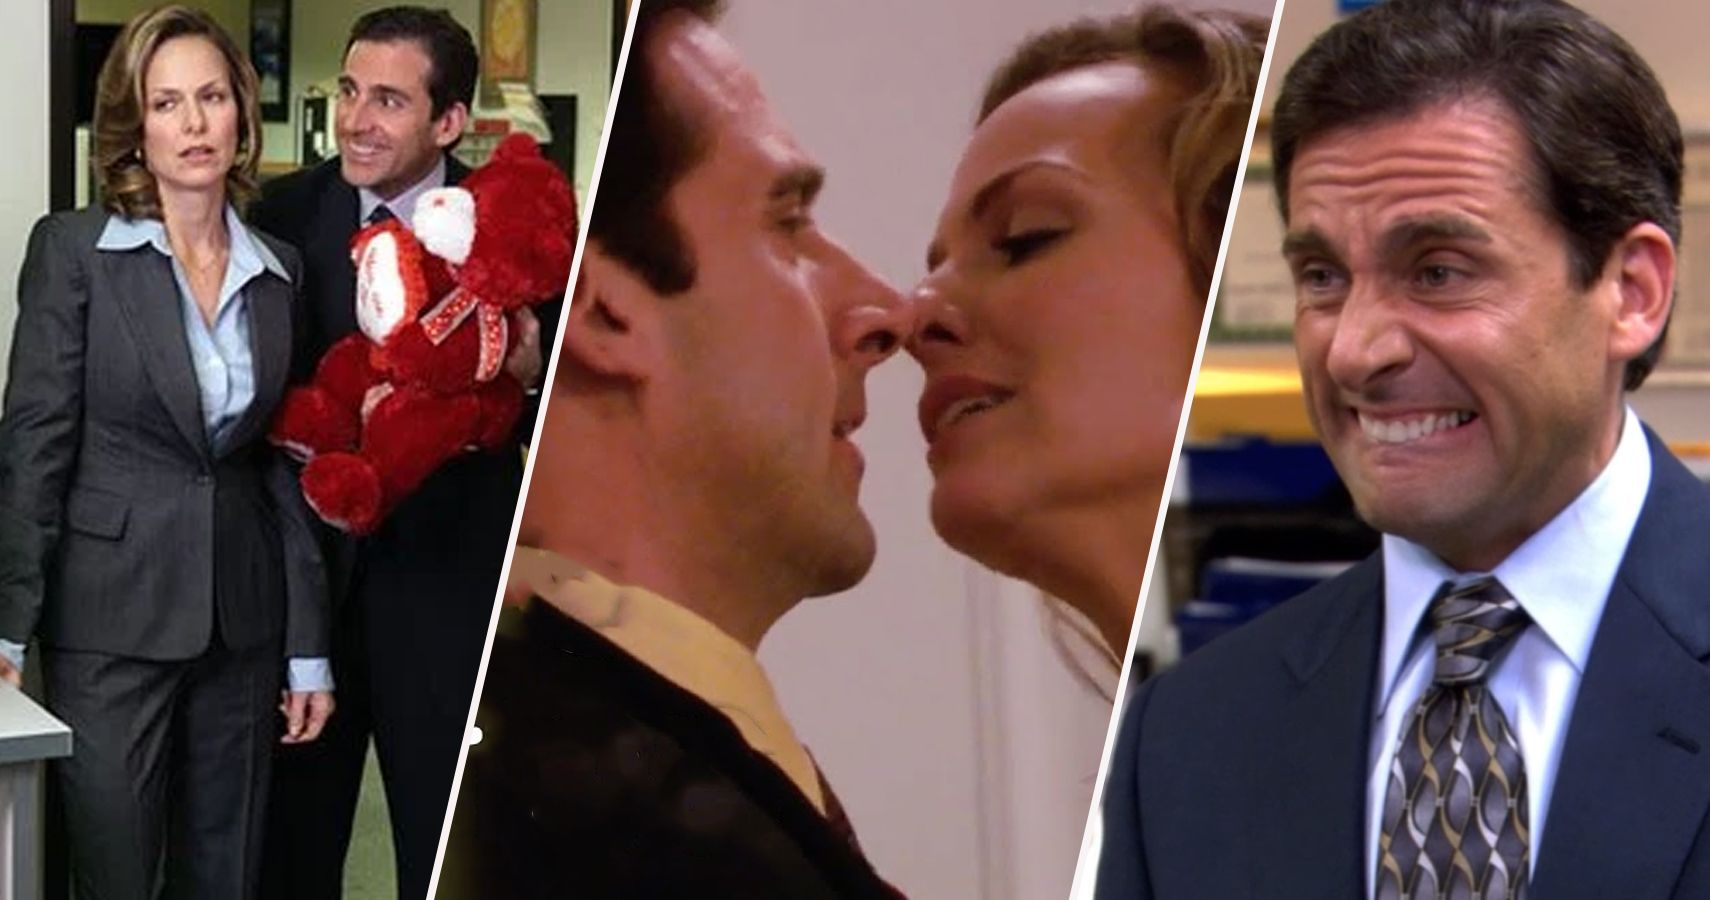 The Office: 20 Things That Make No Sense About Michael Scott And